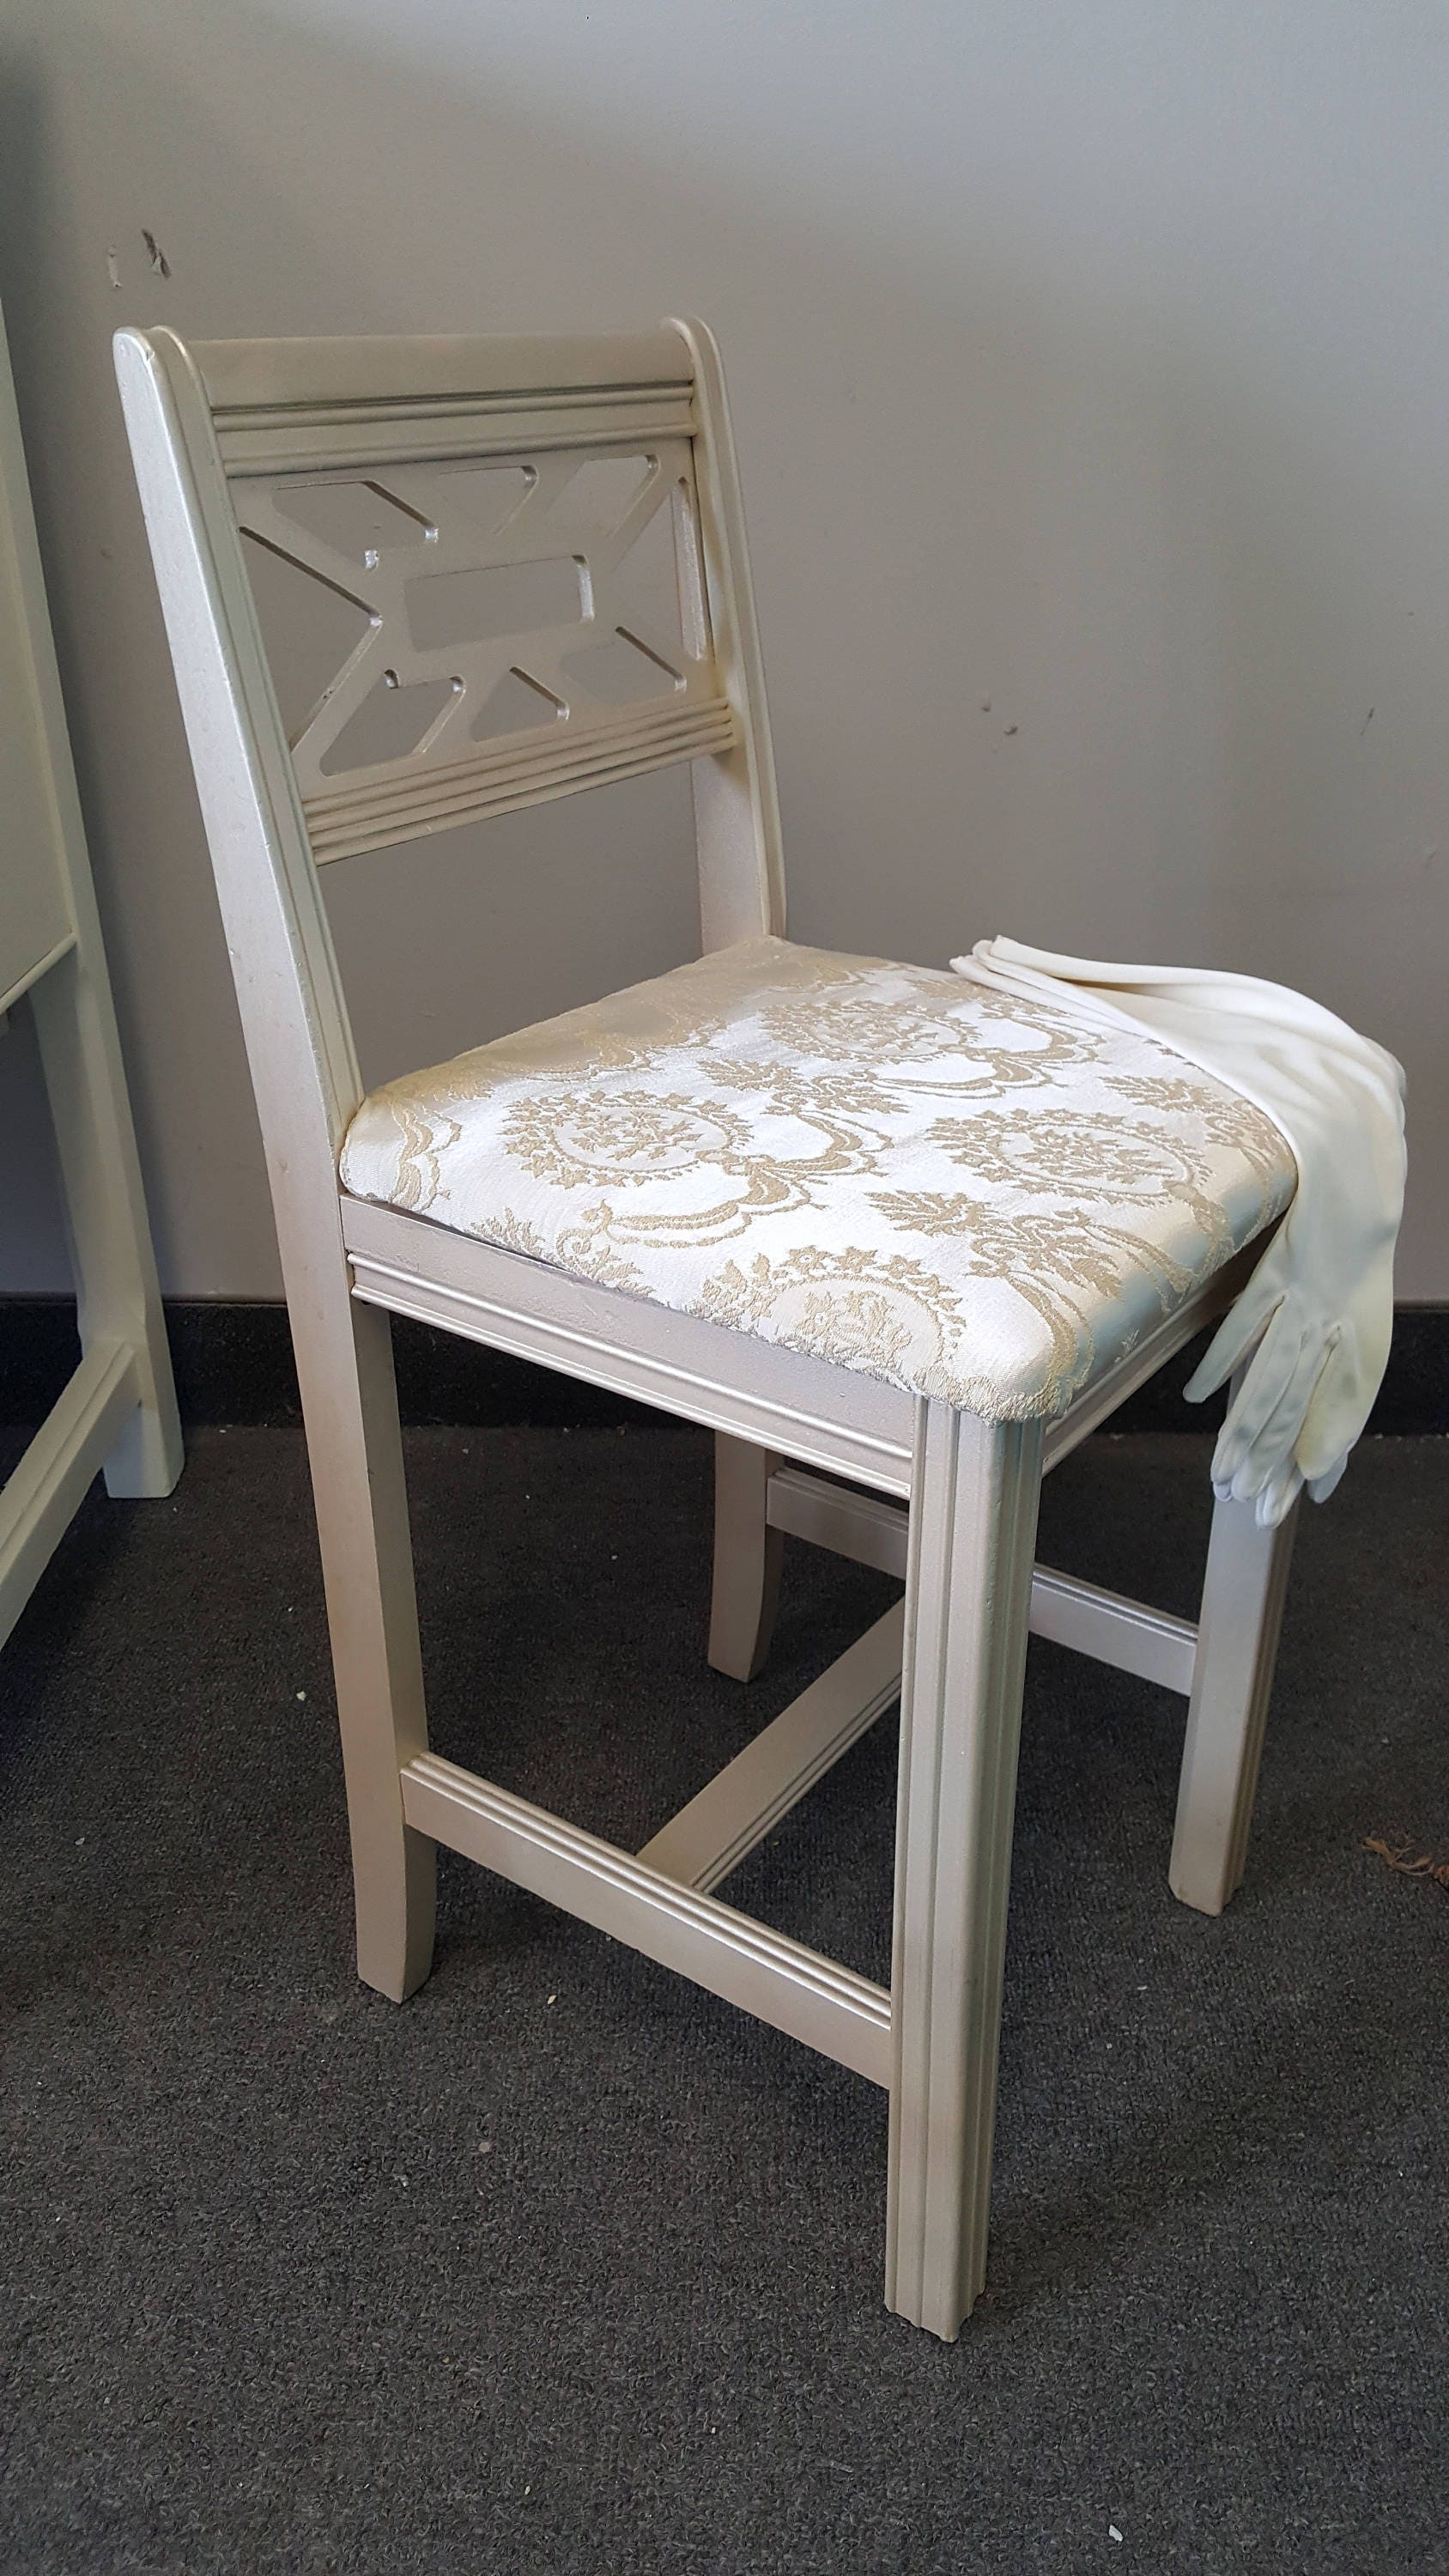 Vintage Metallic vanity chair shabby chic glam PICK UP ONLY